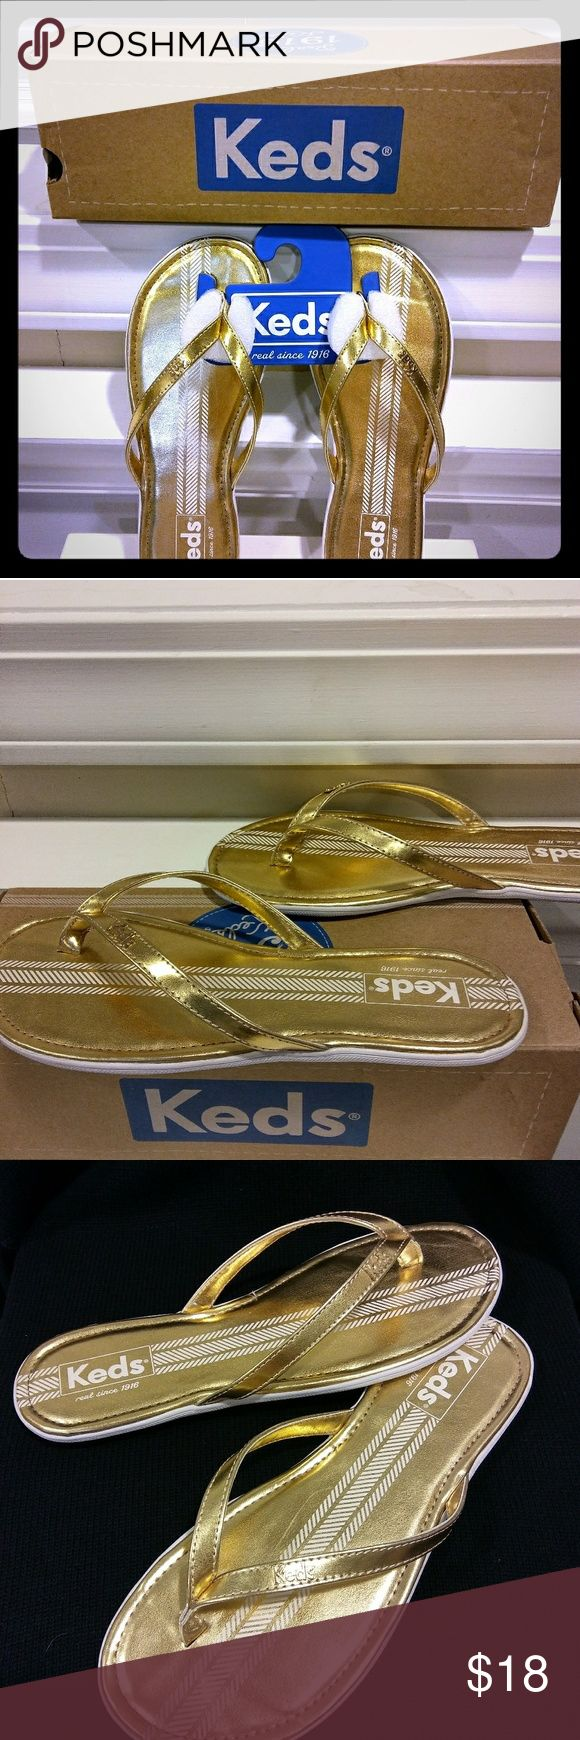 NEW KEDS TEALIGHT MET GOLD FLIP FLOPS 7M BRAND NEW SUPER CUTE AND SUMMERY! A pair of KEDS flip flops that go by the style name: TEALIGHT MET GOLD. True to size in a 7M. Good old KEDS cool style, durability and comfort (especially between the toes). Lightly padded as well. You'll love 'em! Keds Shoes Sandals